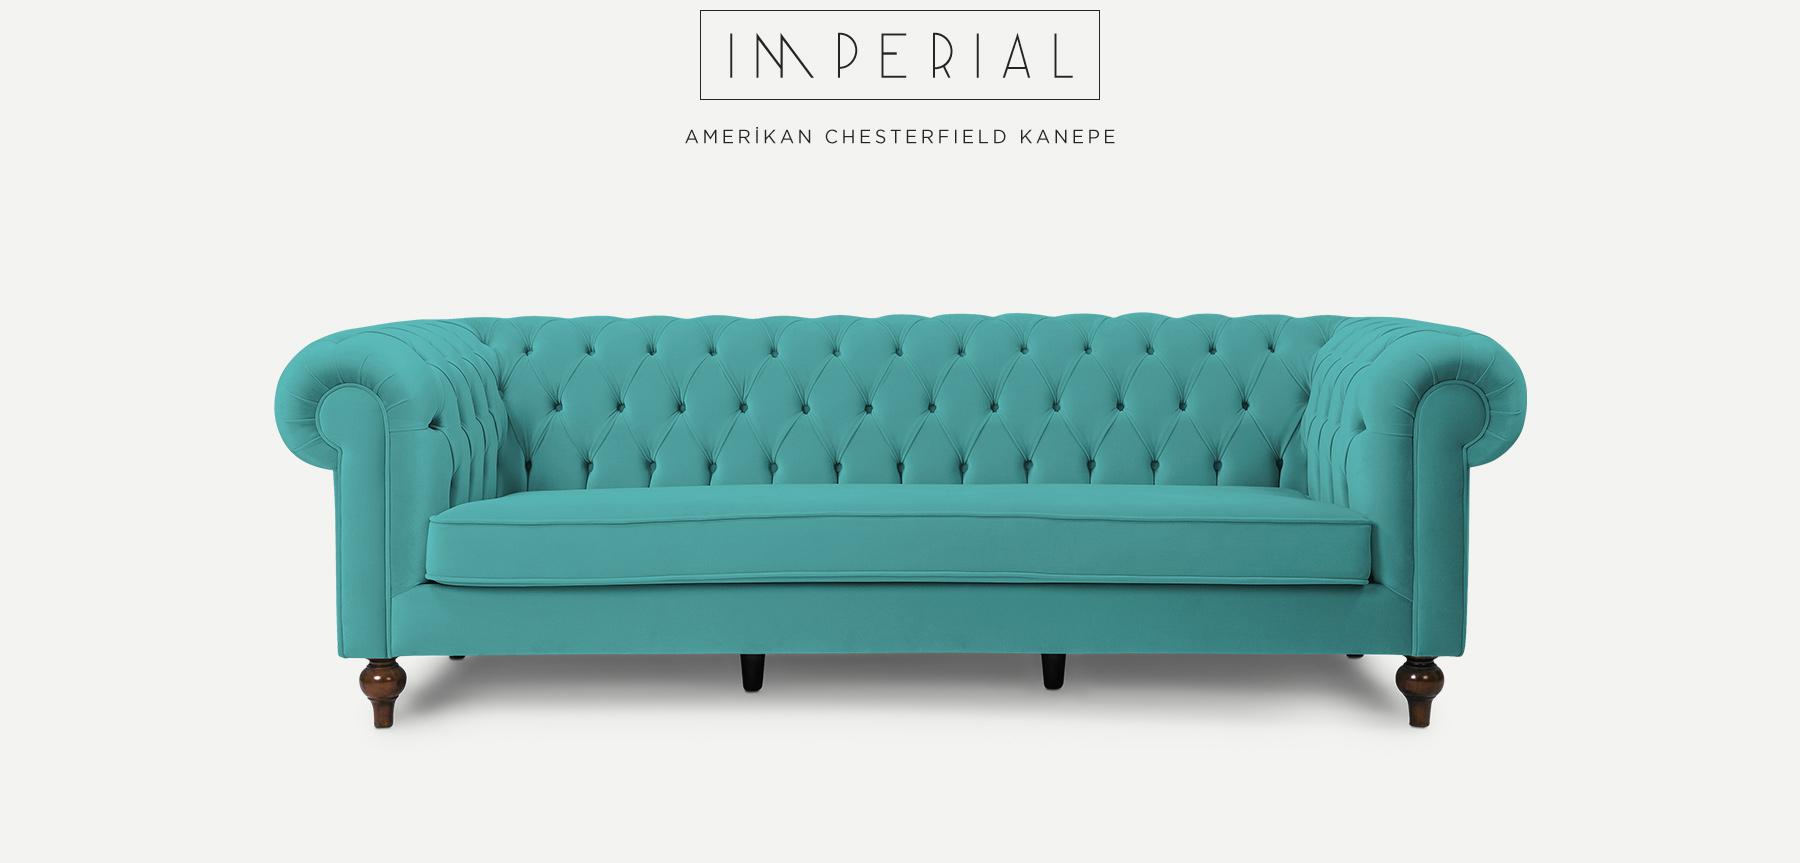 IMPERIAL Üçlü Turkuaz Amerikan CHESTERFIELD'in resmi